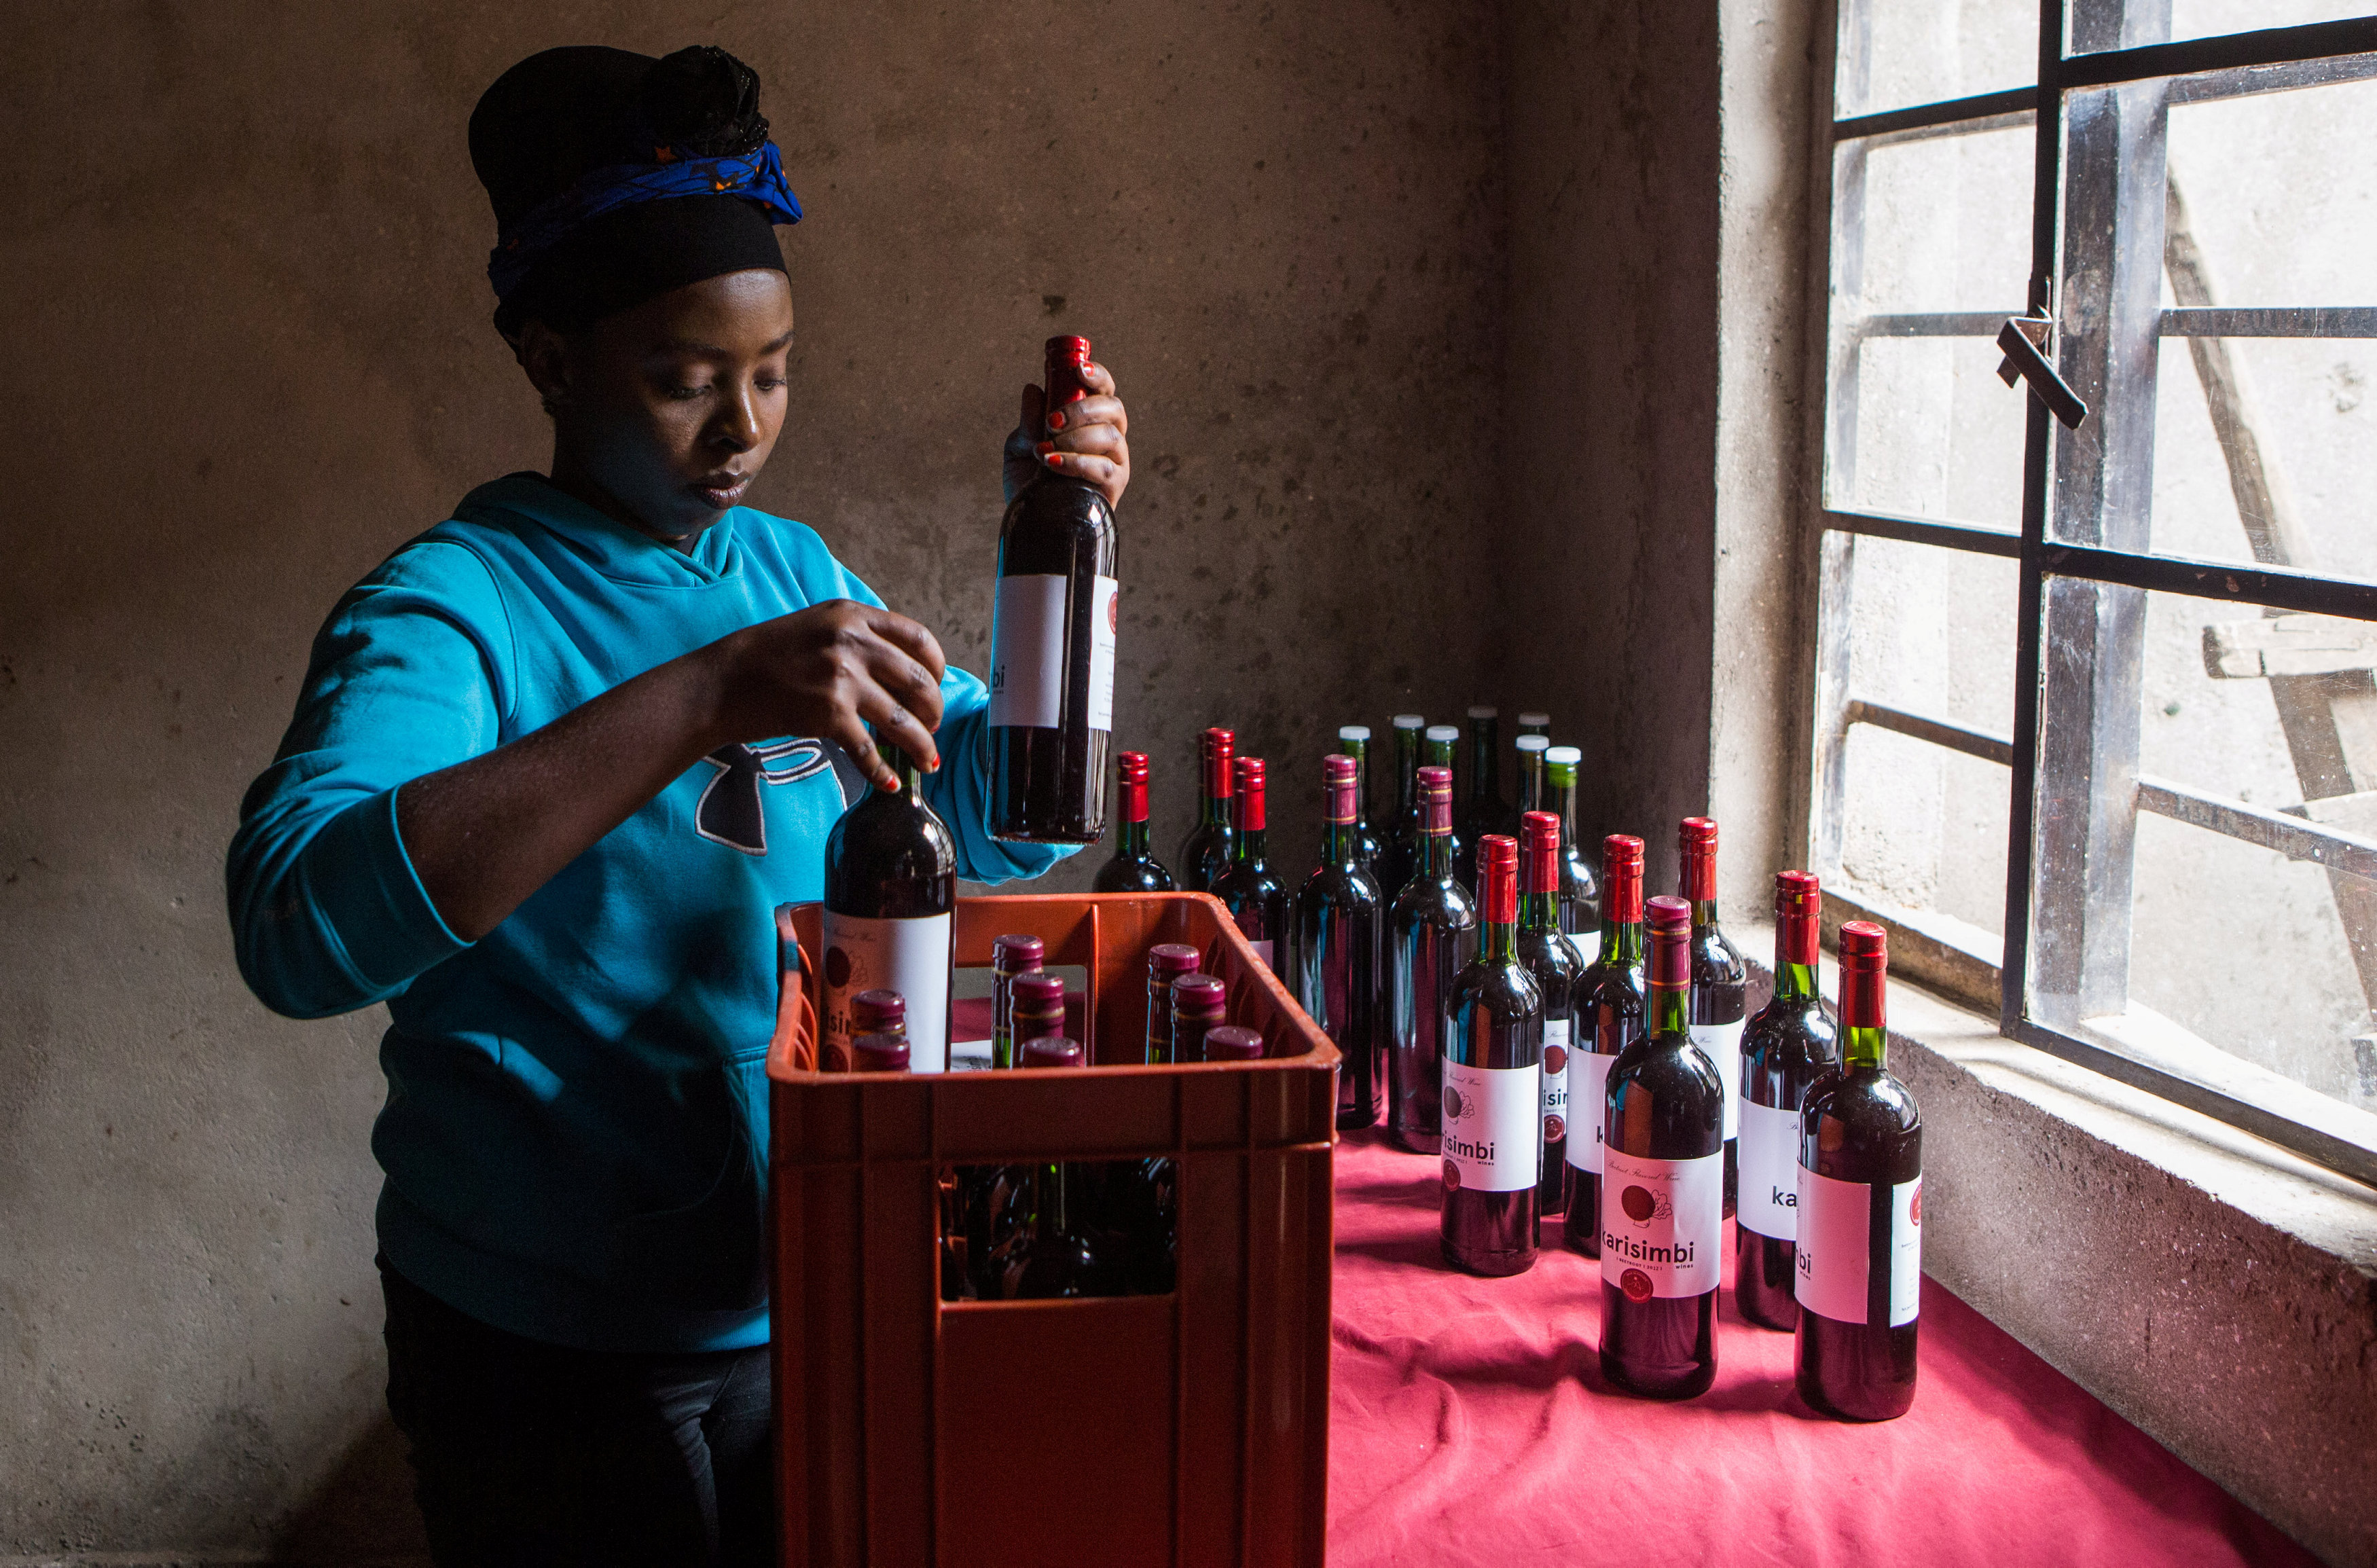 Assoumpata Uwamariya wine bottles from the juice of beetroots at her production stall in Rubavu district, Western province